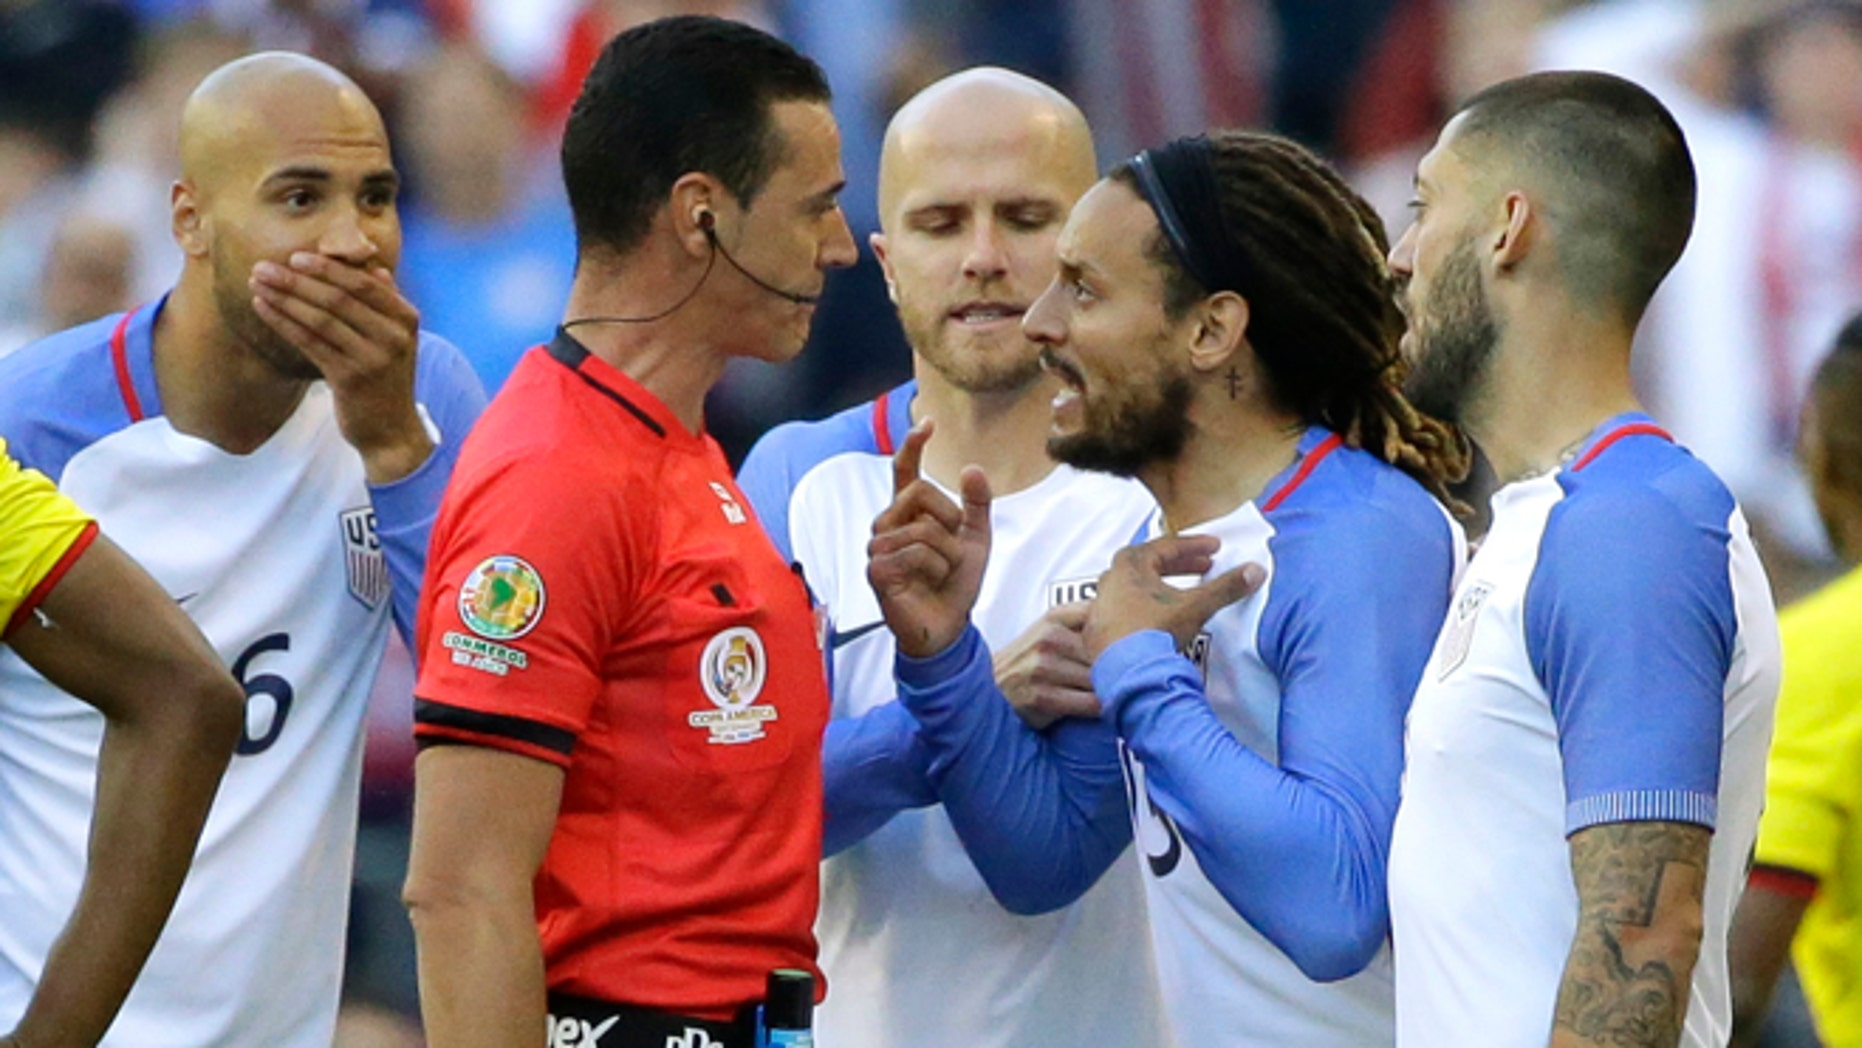 United States midfielder Jermaine Jones, second from right, protests to referee Wilmar Roldan, second from left, after Roldan gave Jones a red card in the second half of a Copa America Centenario soccer match against Ecuador, Thursday, June 16, 2016 at CenturyLink Field in Seattle. The United States beat Ecuador 2-1. (AP Photo/Ted S. Warren)